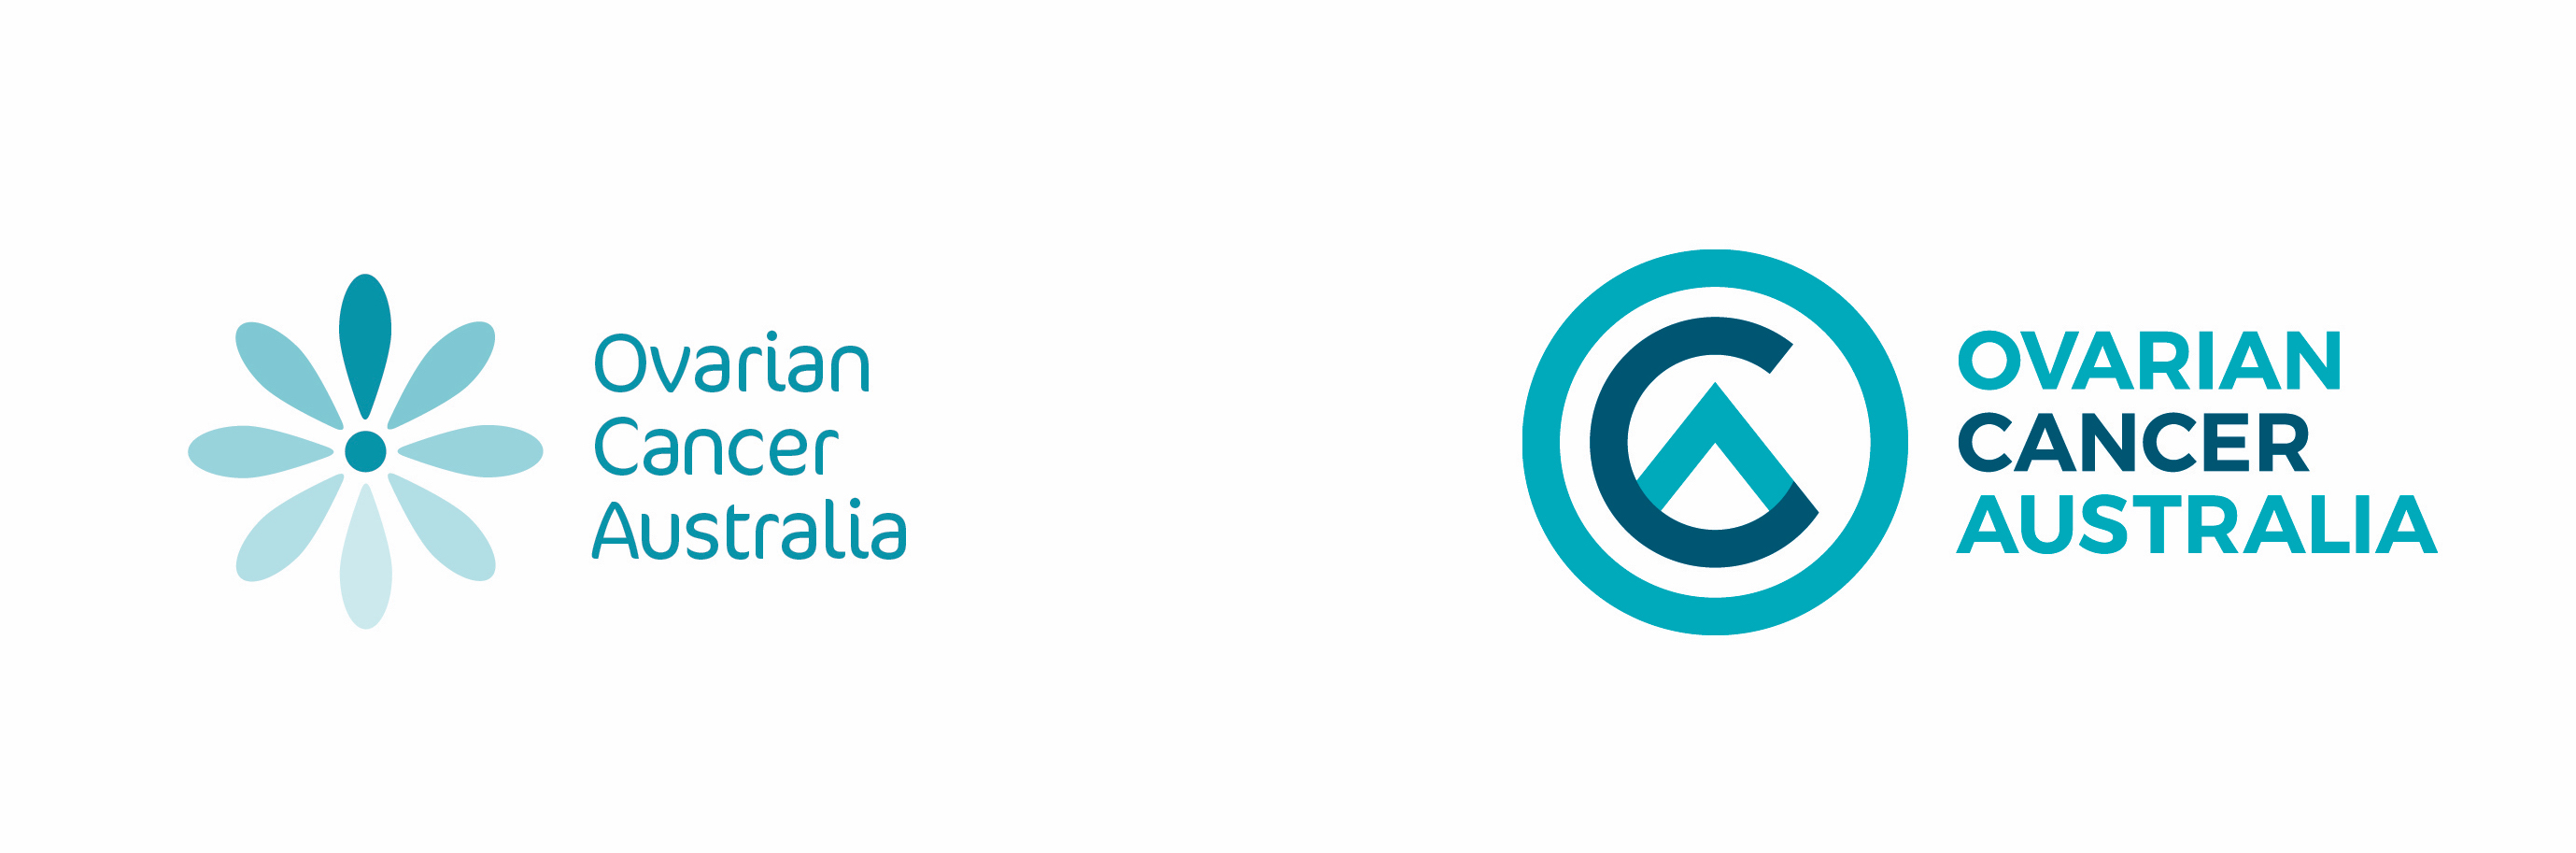 Ovarian Cancer Australia rebrand